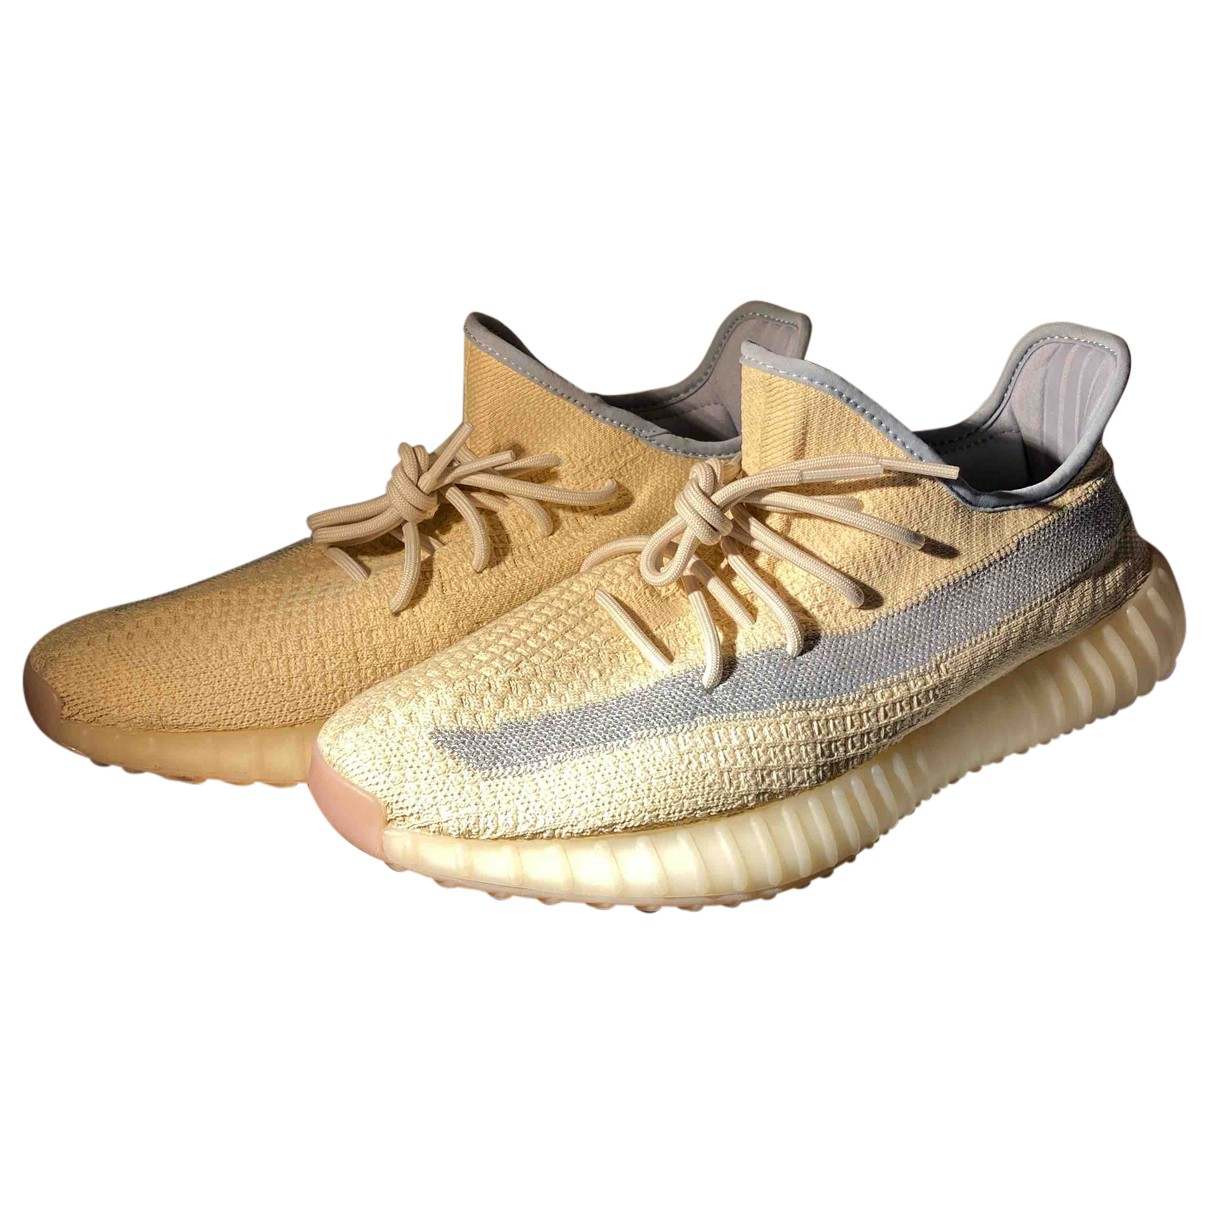 Yeezy X Adidas Boost 350 V2 Yellow Cloth Trainers for Men 46.5 EU